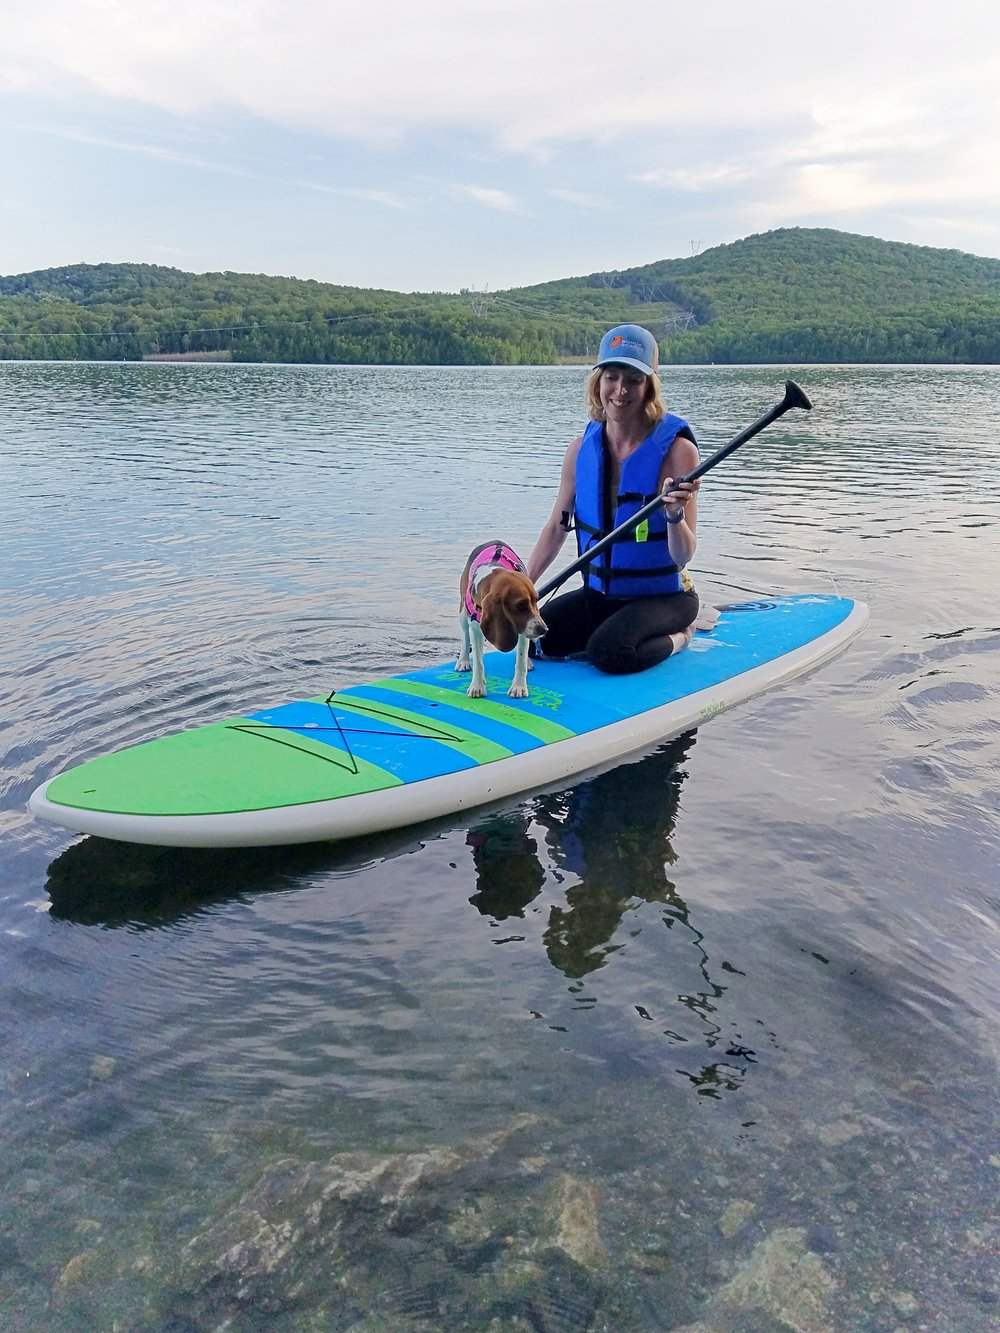 Theresa - Theresa is co-owner of Greenwood Lake Paddleboards. Theresa is a licensed acupuncturist with offices in Oakland NJ & Suffern NY. She has been practicing Yoga since she was a teenager and has been involved in the water sports industry since 2014. She currently runs all yoga programming and group events for GWL SUP.